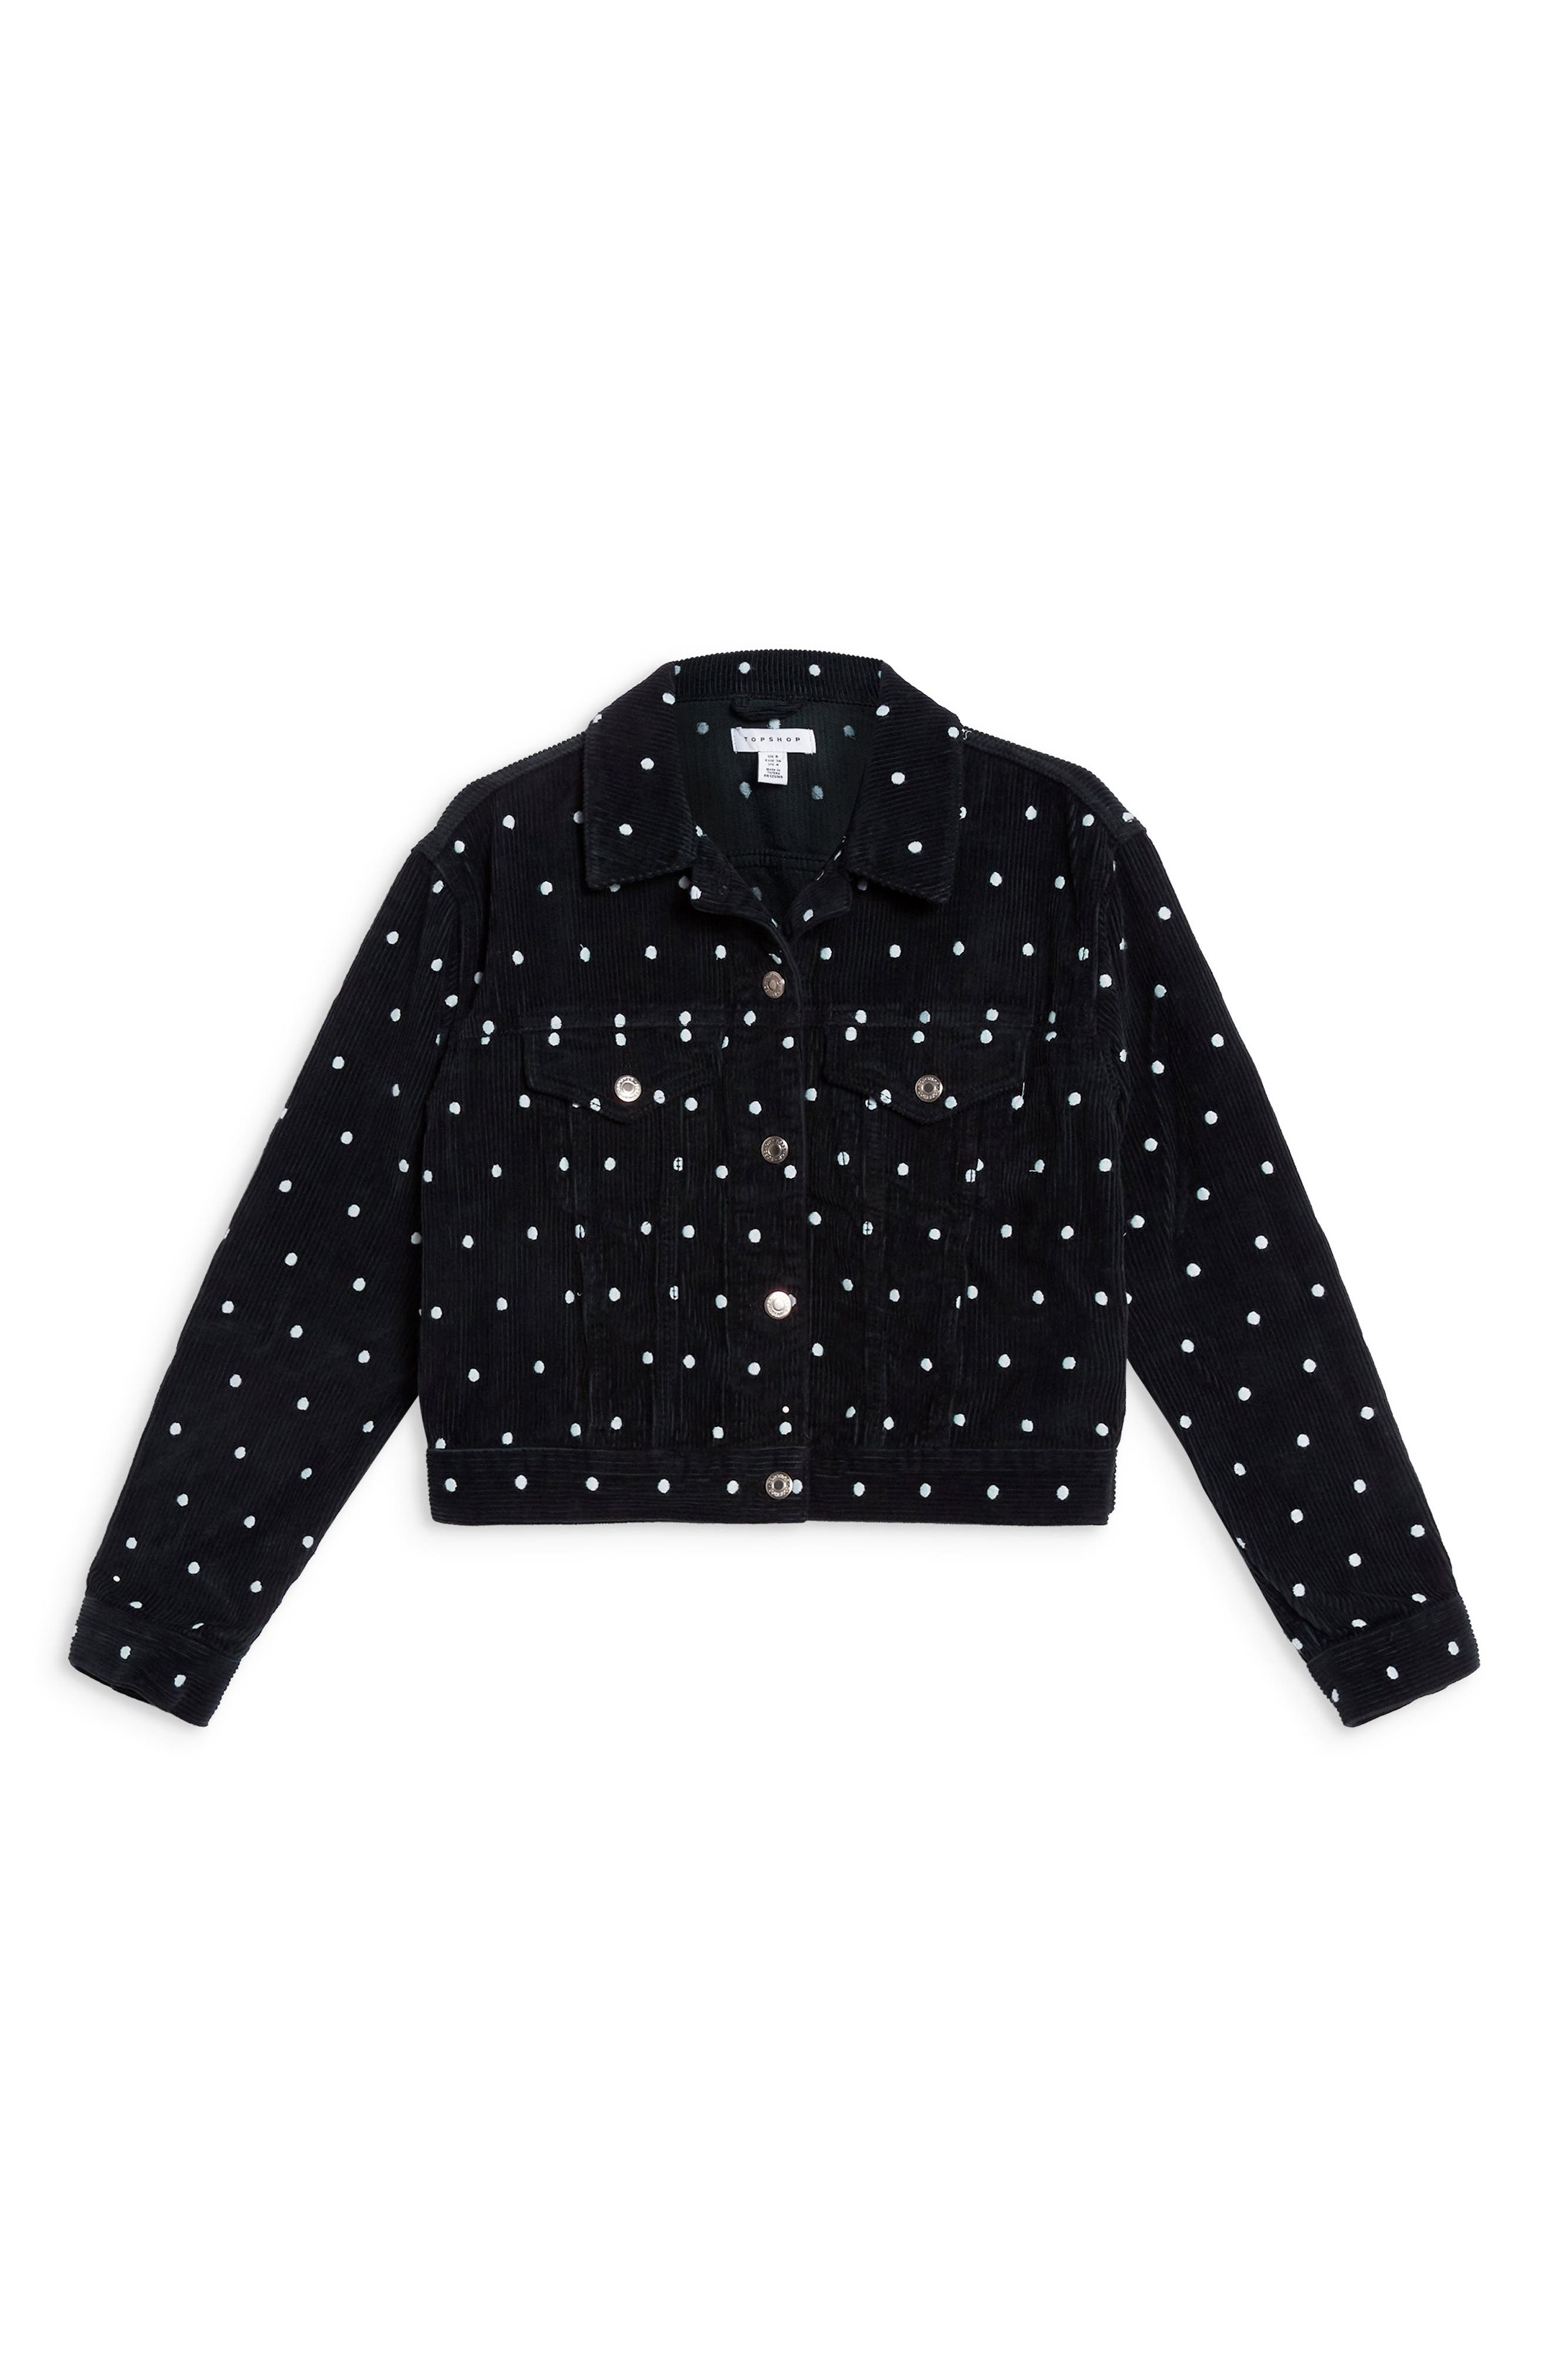 Spot Corduroy Jacket,                             Alternate thumbnail 3, color,                             NAVY BLUE